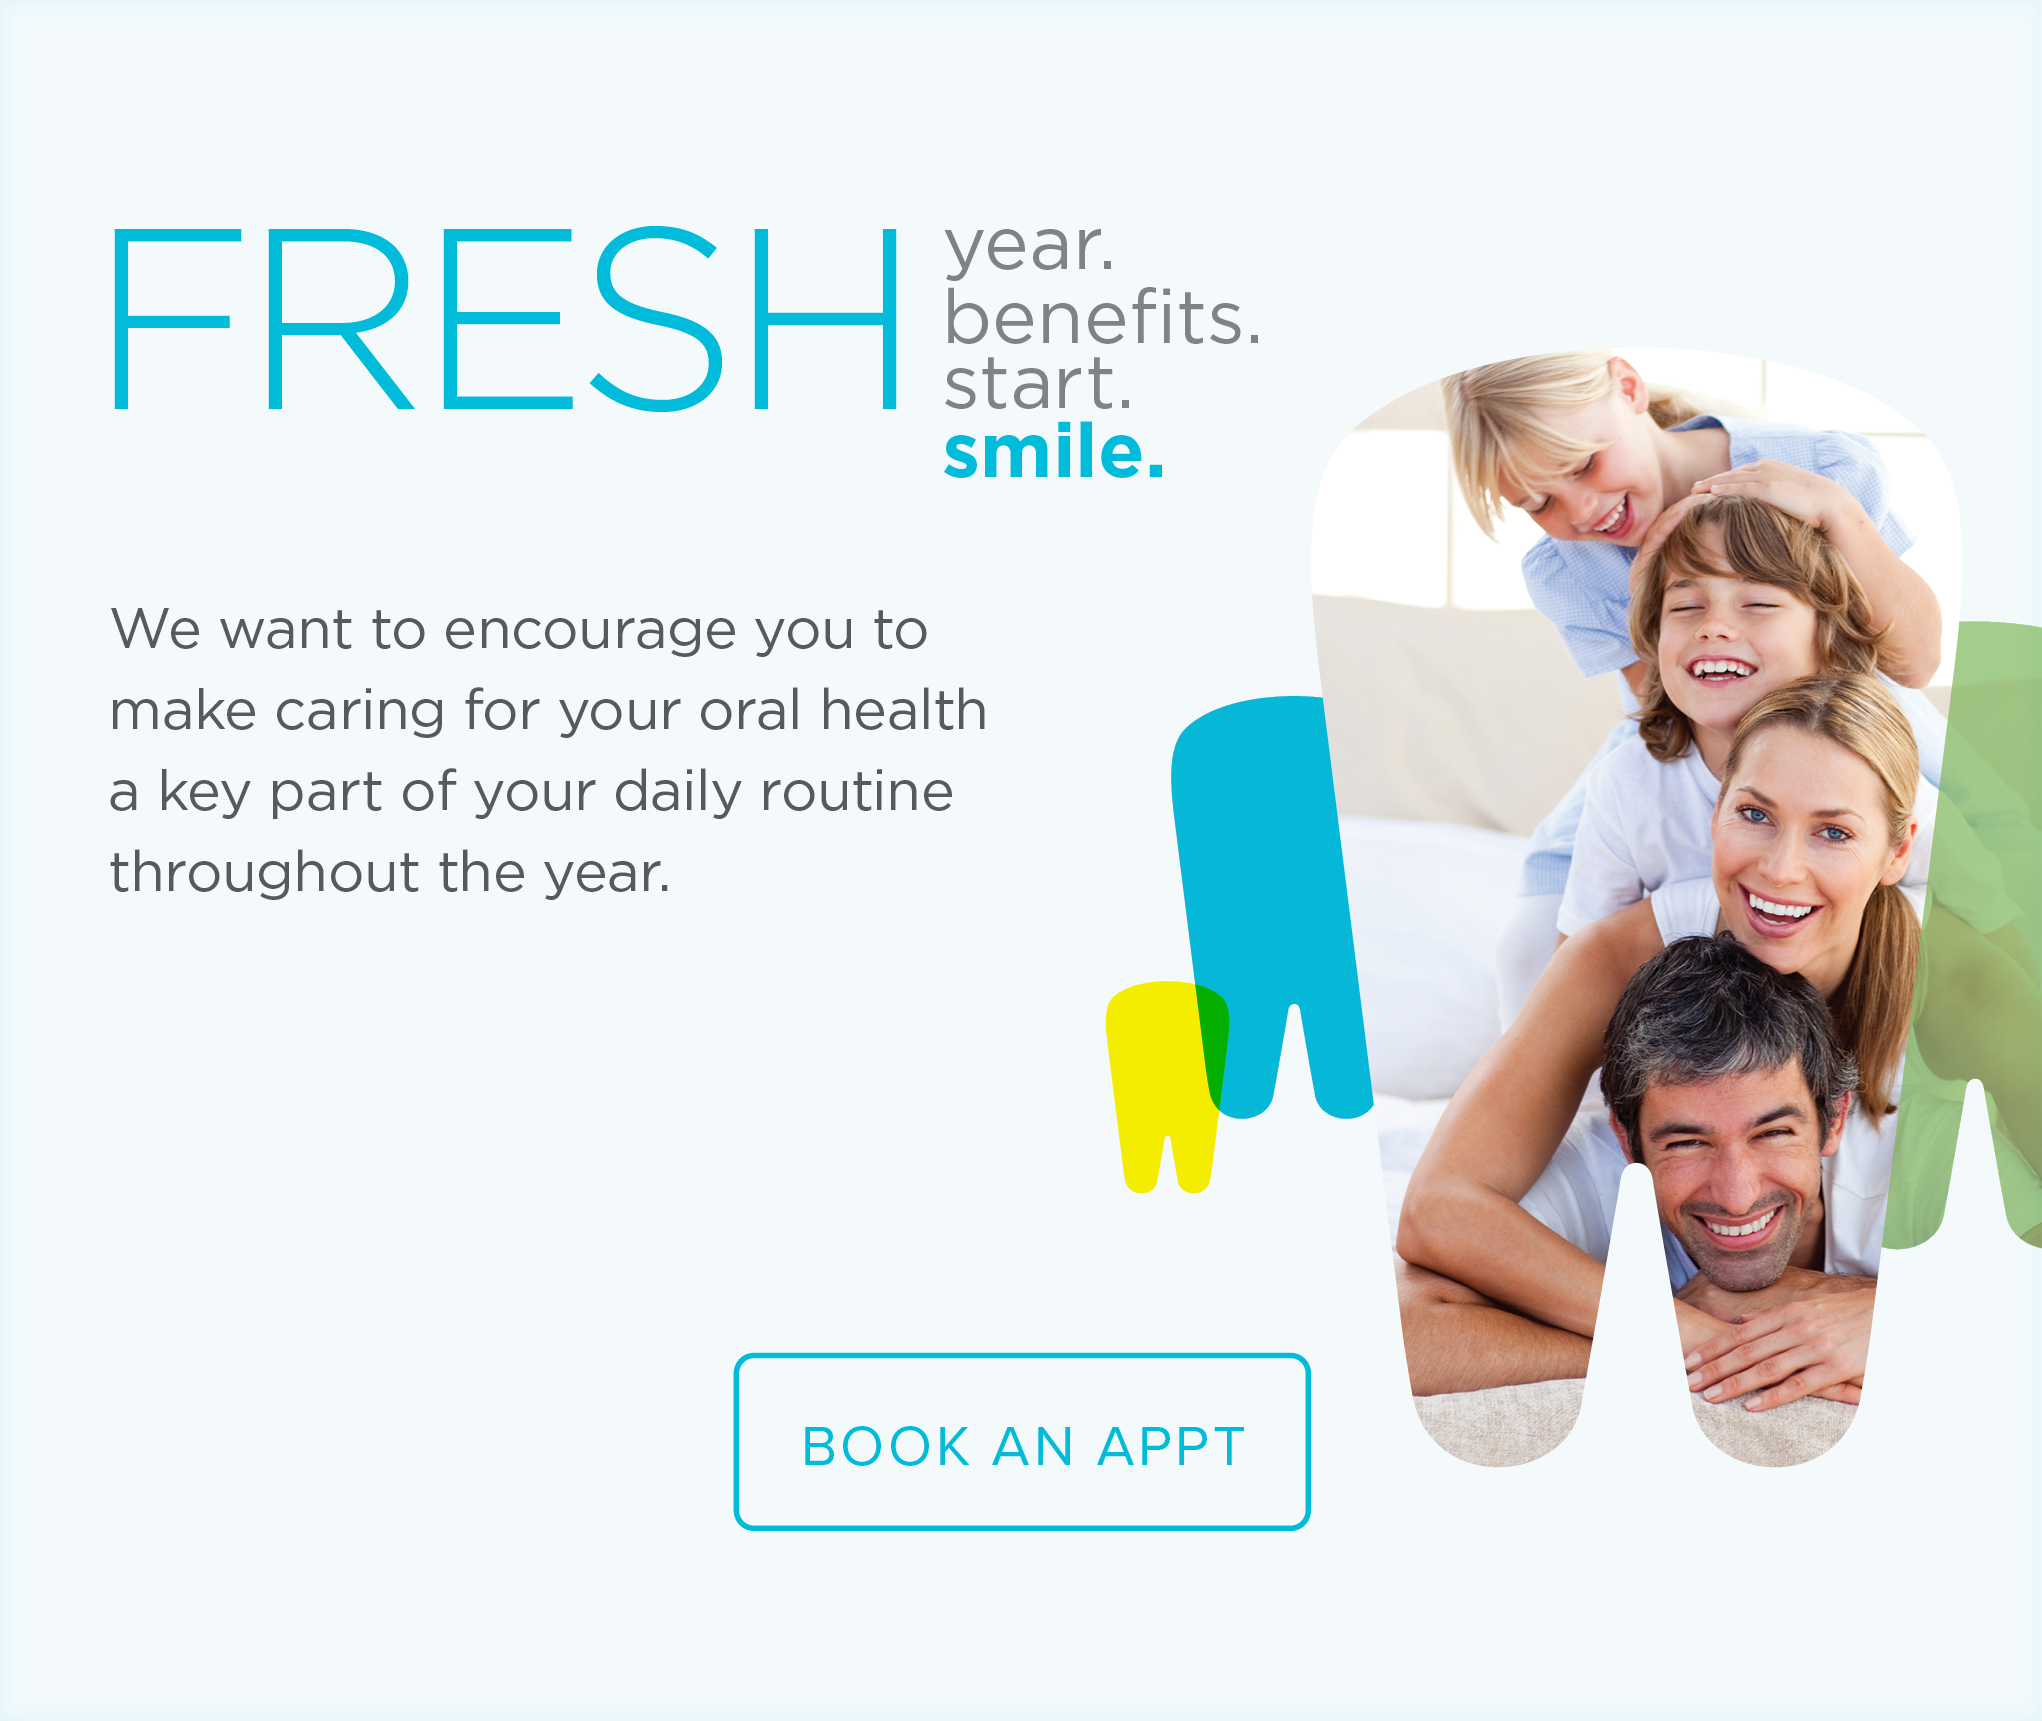 Cartersville Dentist Office - Make the Most of Your Benefits